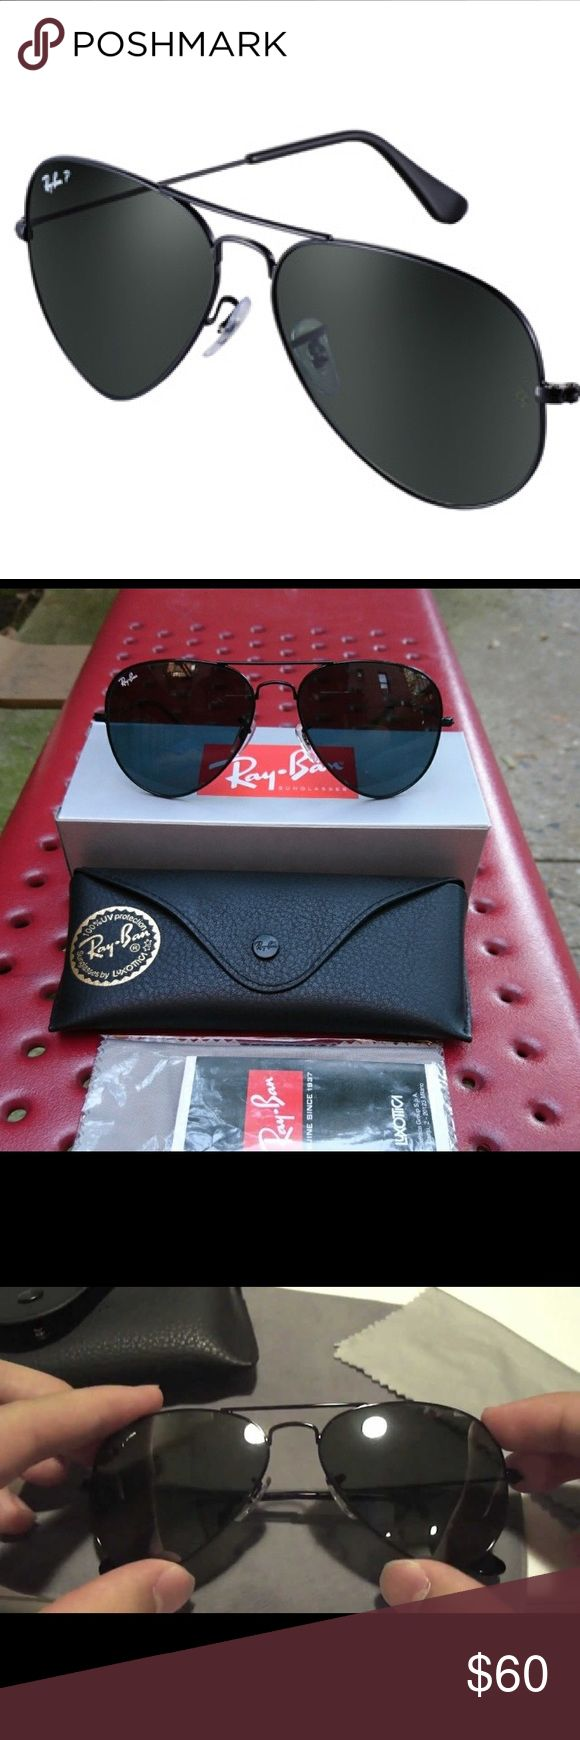 SAME DAY SHIPPING 😎 Rayban RB3025 002 Brand new and authentic RB 3025 002 58mm. Black/Black Grey Aviators. Orders placed before 3pm EST will be shipped the same day! Ray-Ban Accessories Sunglasses